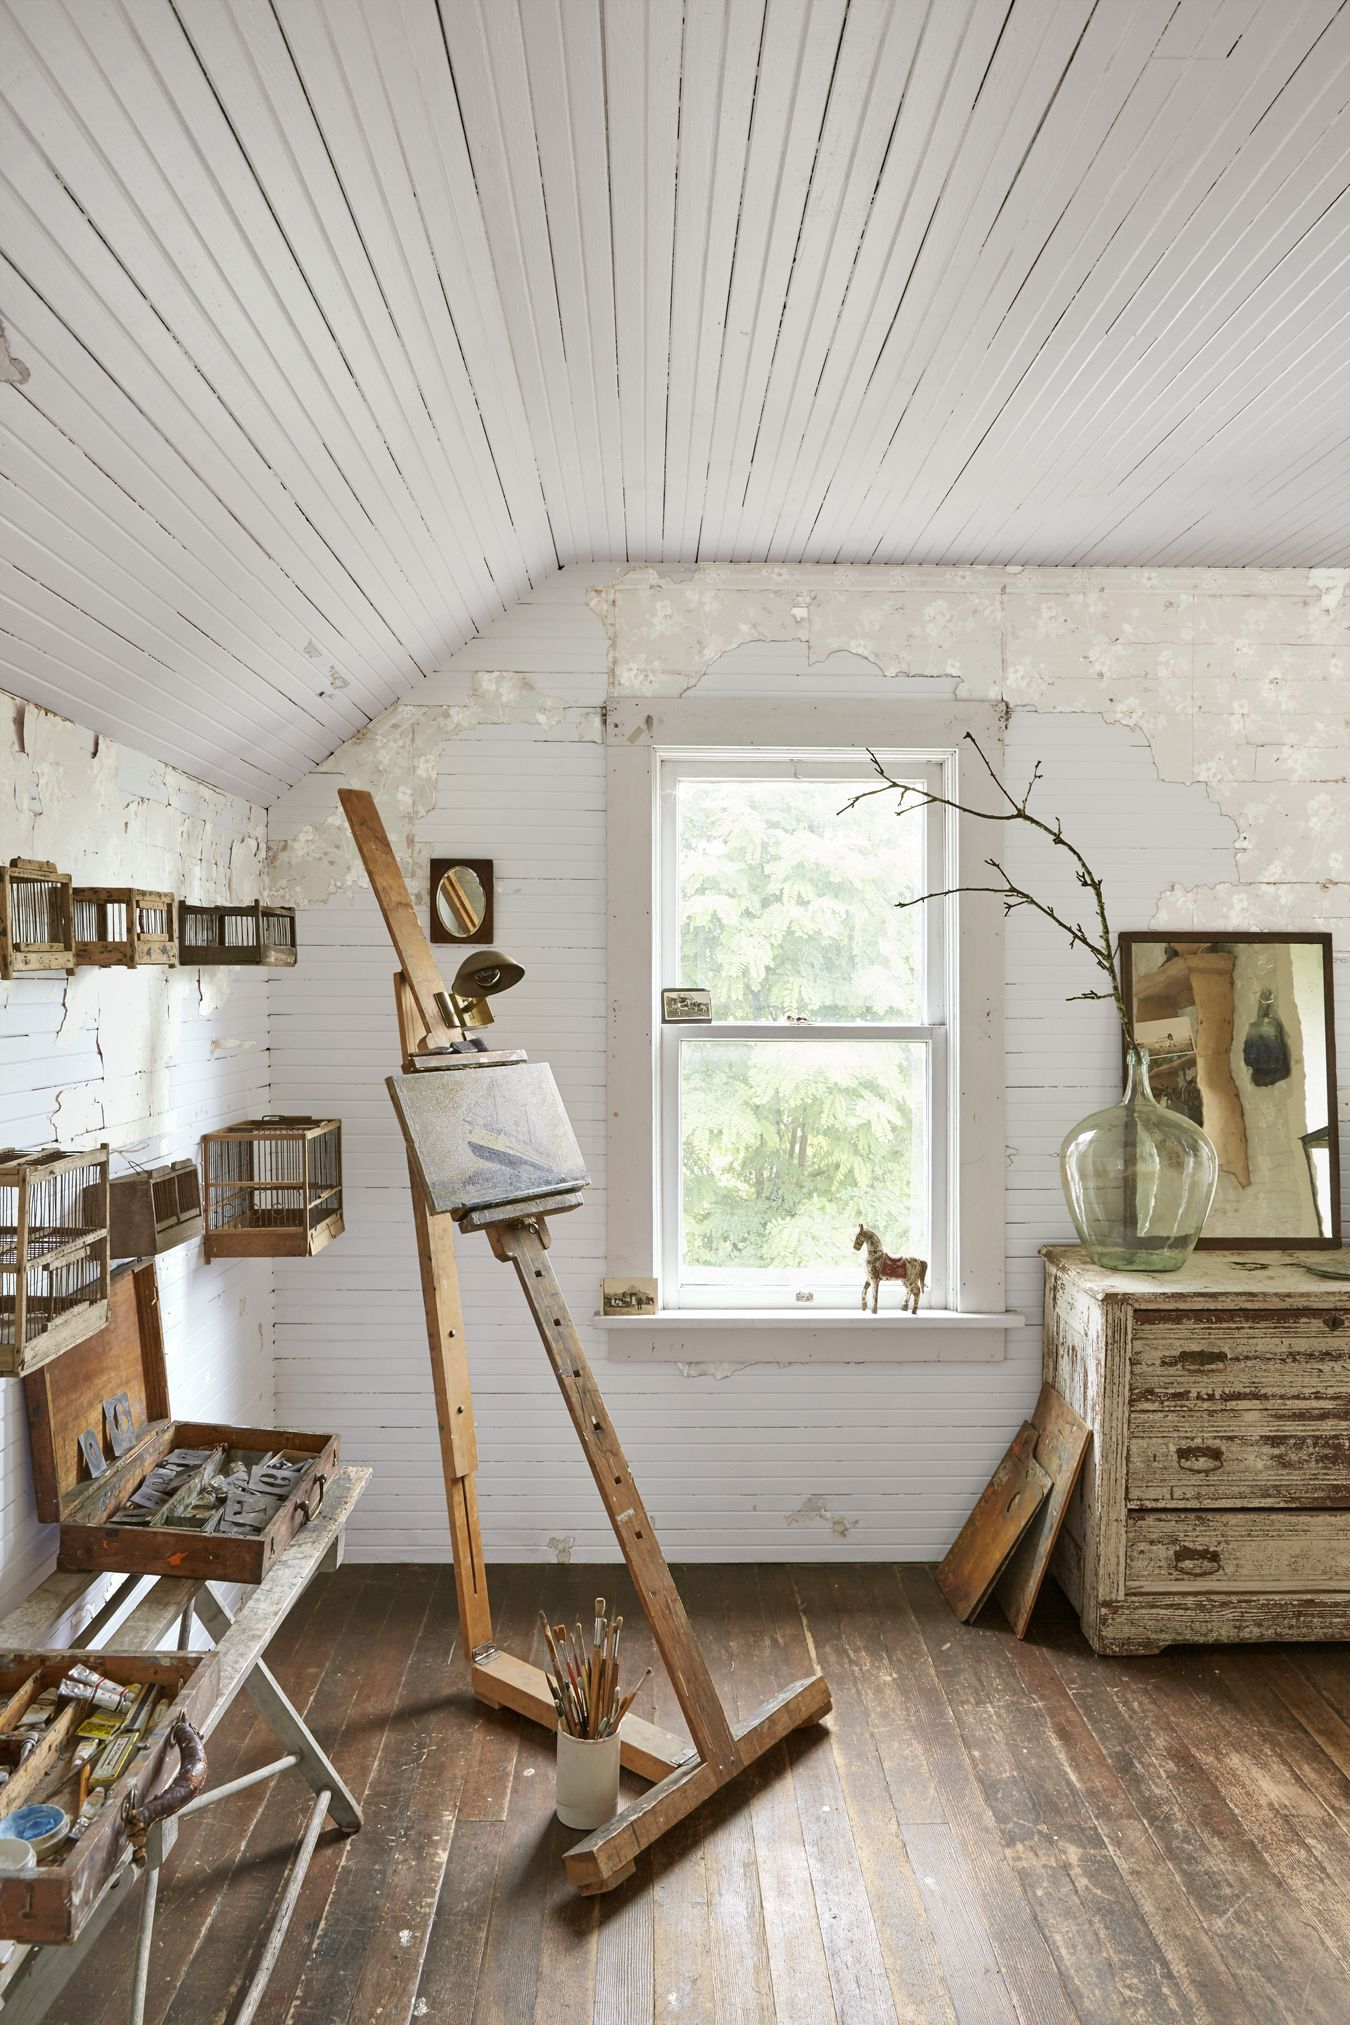 this antiques dealers 106yearold farmhouse is just as beautiful as youd expect is part of Art studio at home - This Antiques Dealer's 106YearOld Farmhouse Is Just as Beautiful as You'd Expect artStudio Bedroom